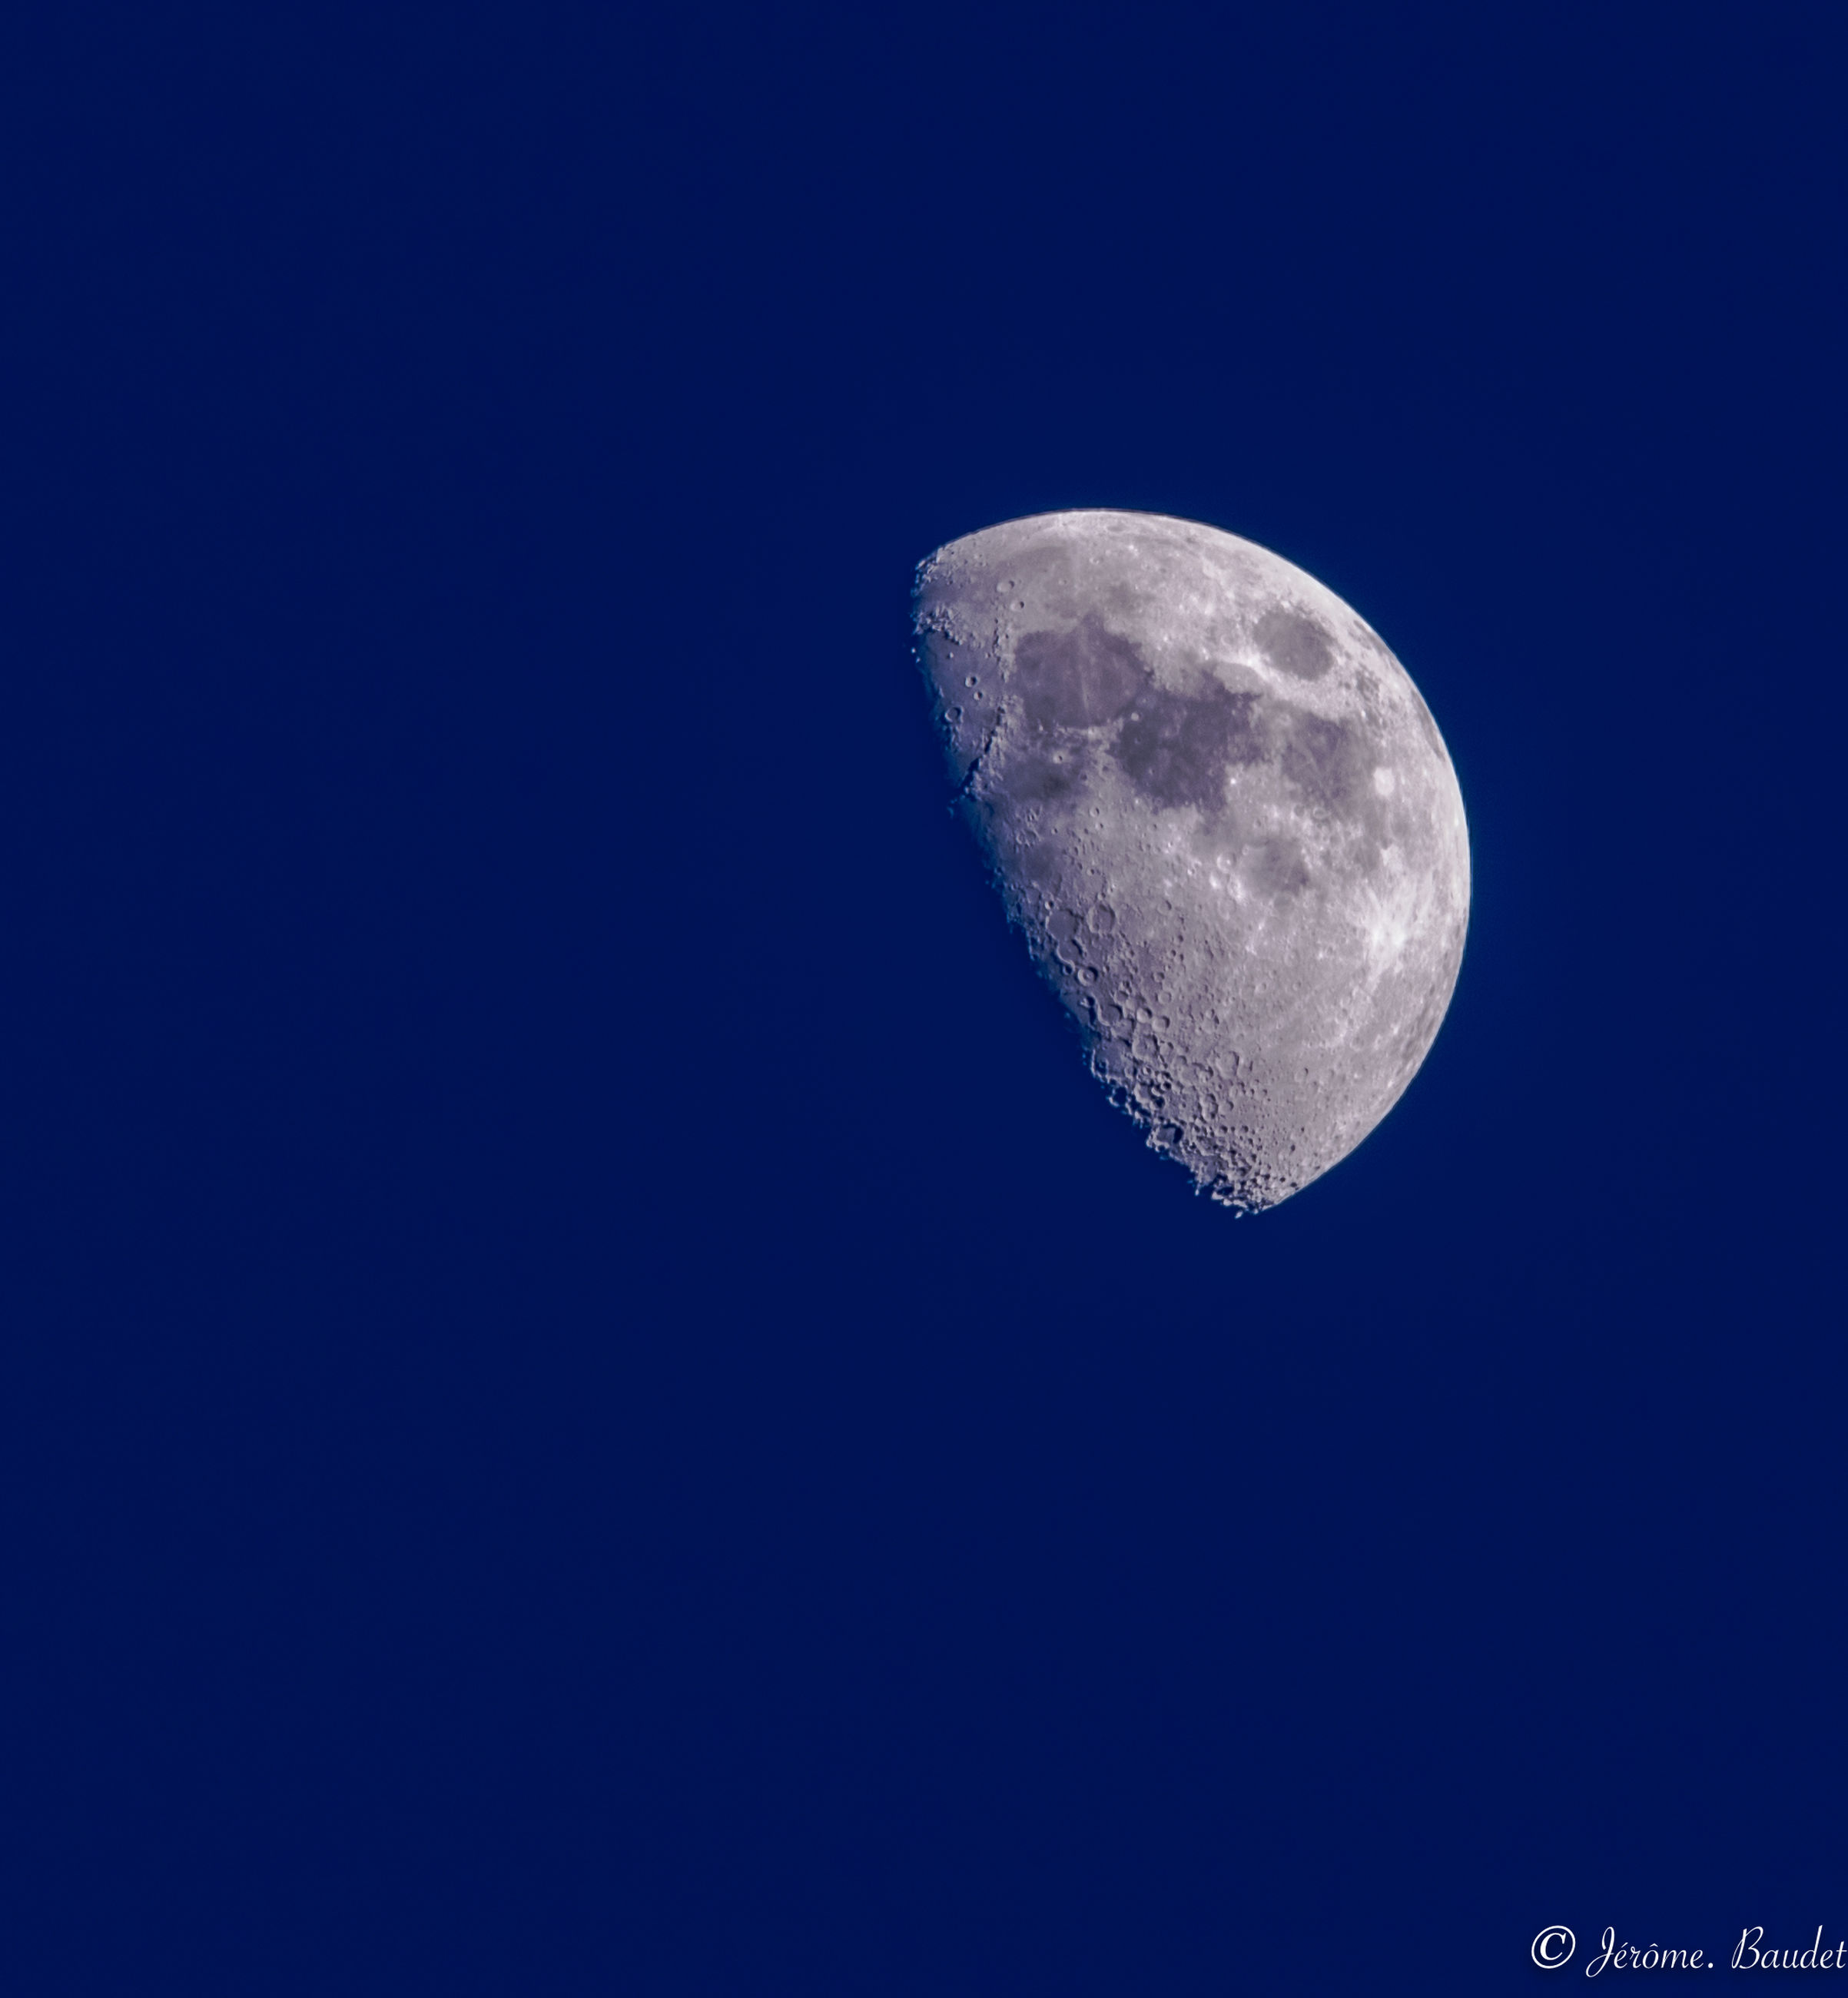 moon, sky, astronomy, space, night, blue, low angle view, moon surface, copy space, planetary moon, beauty in nature, clear sky, nature, tranquility, half moon, no people, tranquil scene, scenics - nature, outdoors, space exploration, space and astronomy